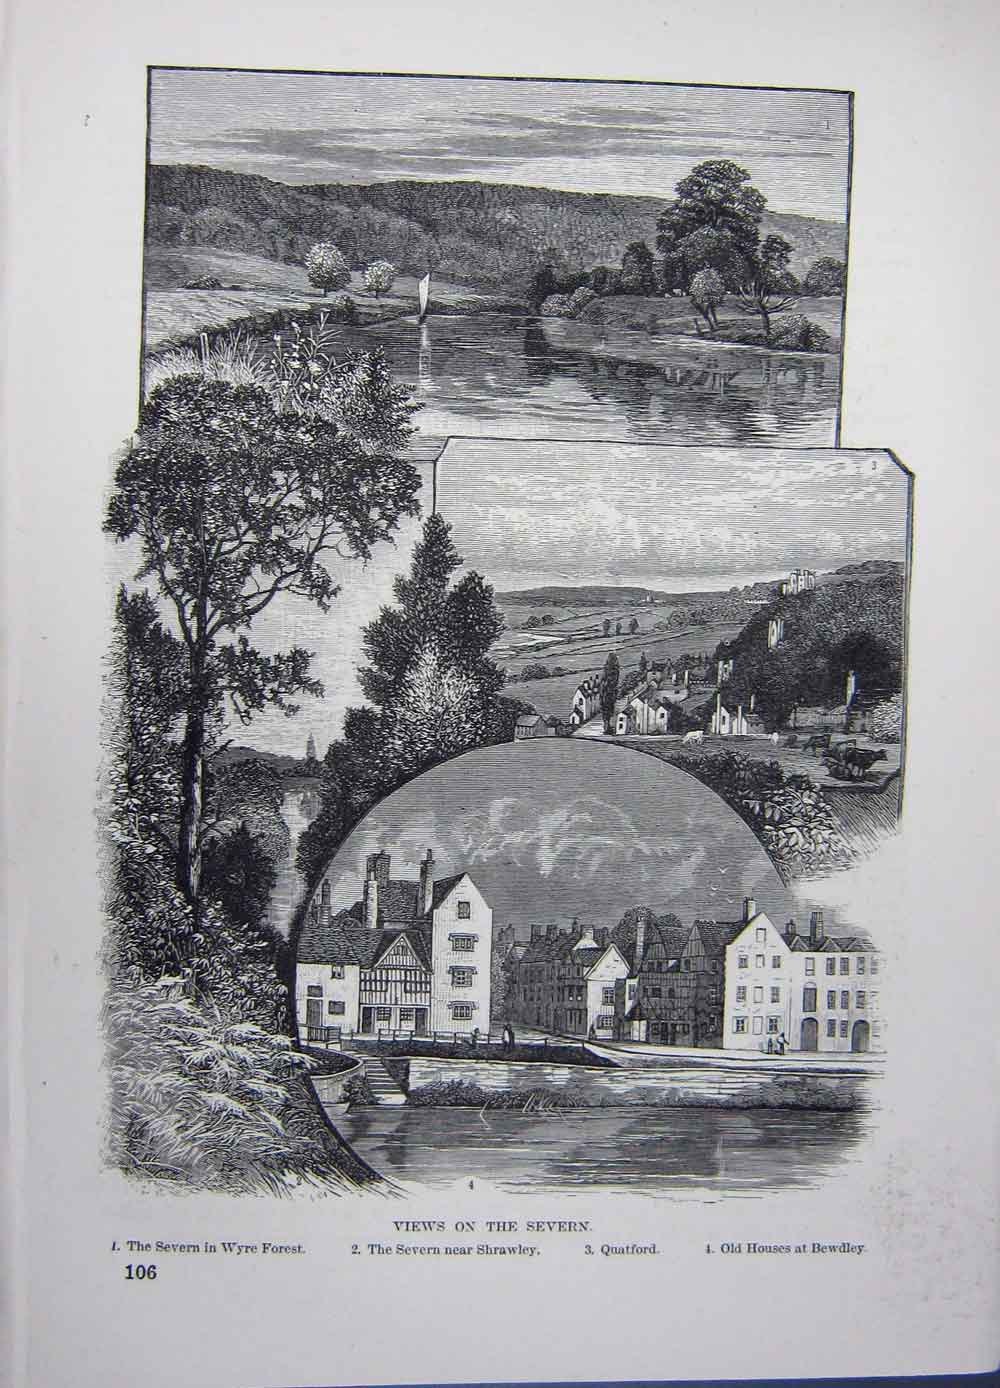 Print Views Severn River Wyre Forset Shrawley Quatford 126661 Old Original